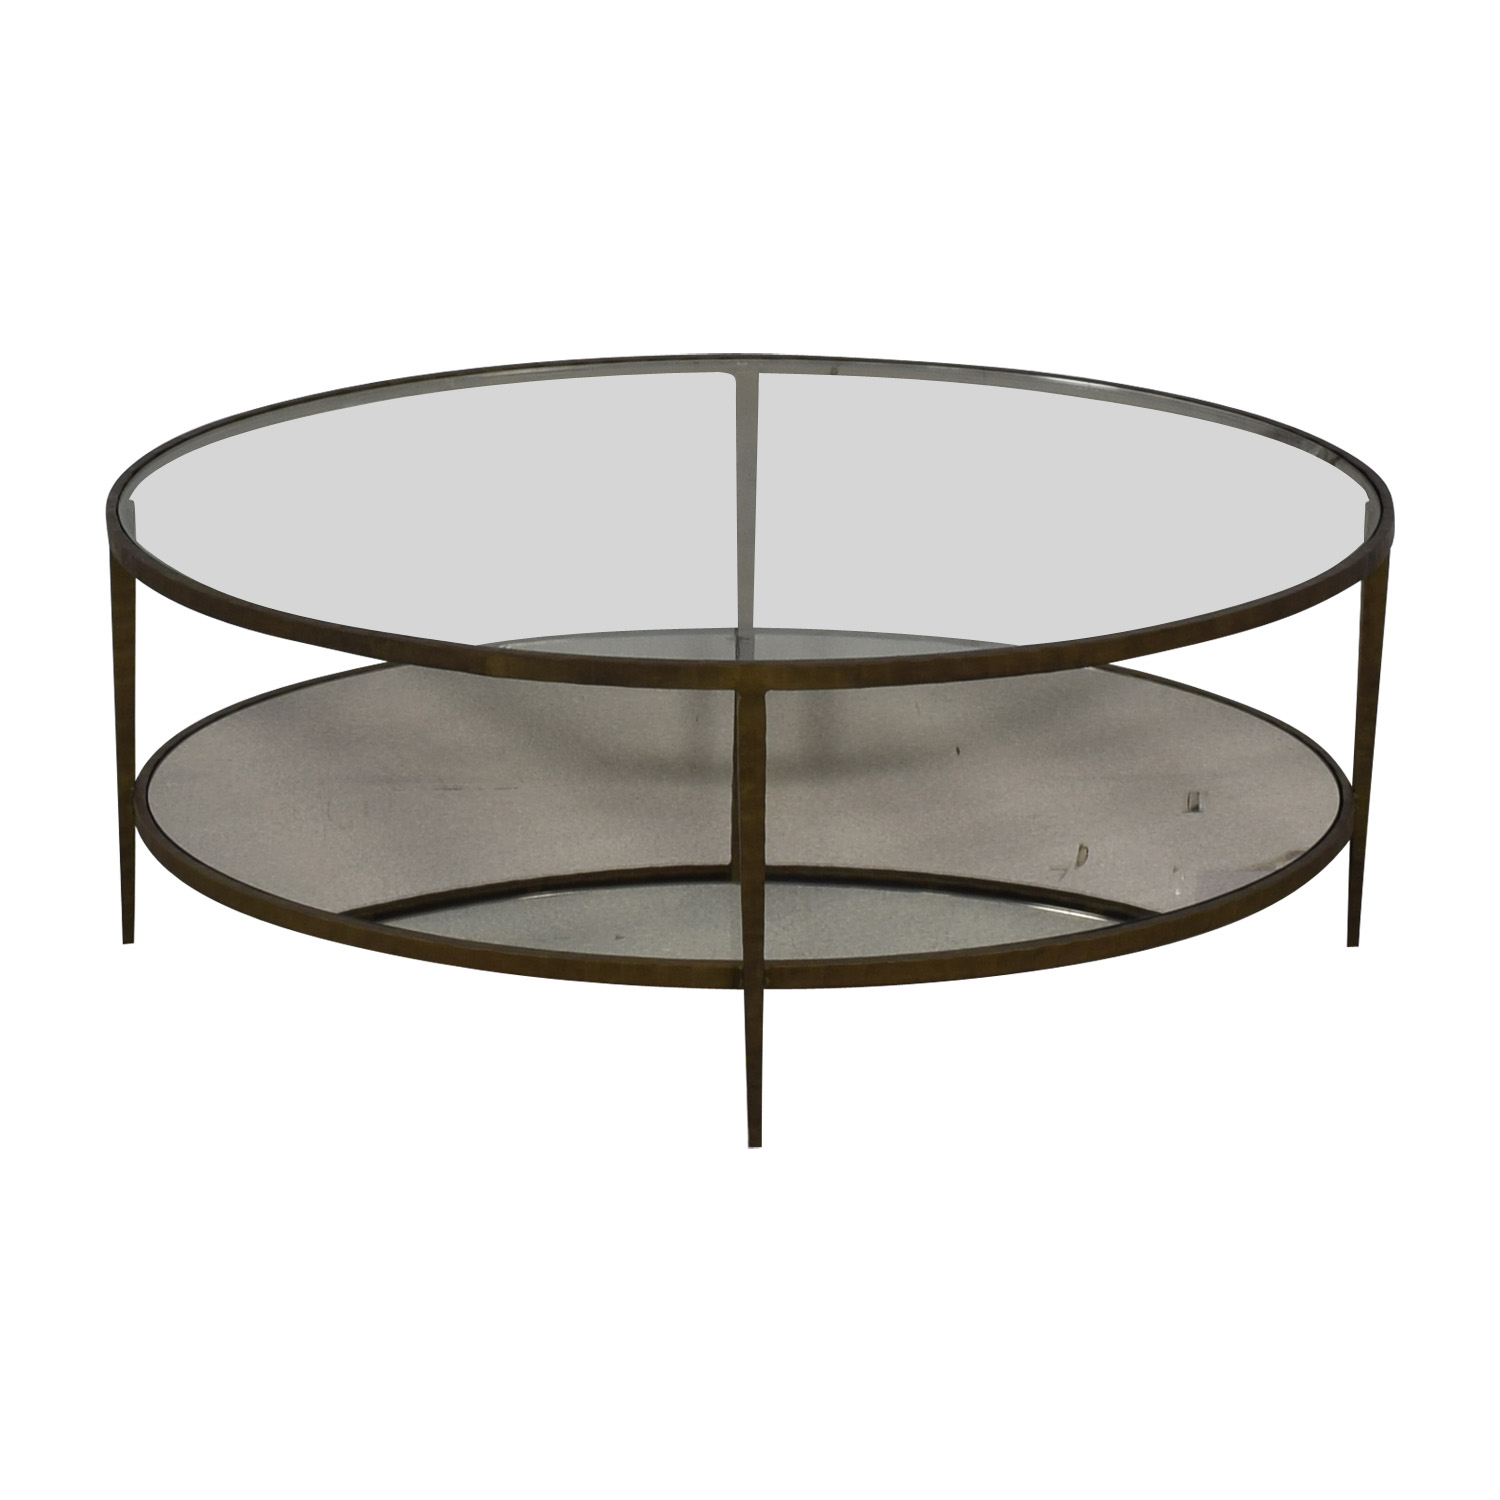 buy Crate & Barrel Crate & Barrel Clairemont Oval Coffee Table online